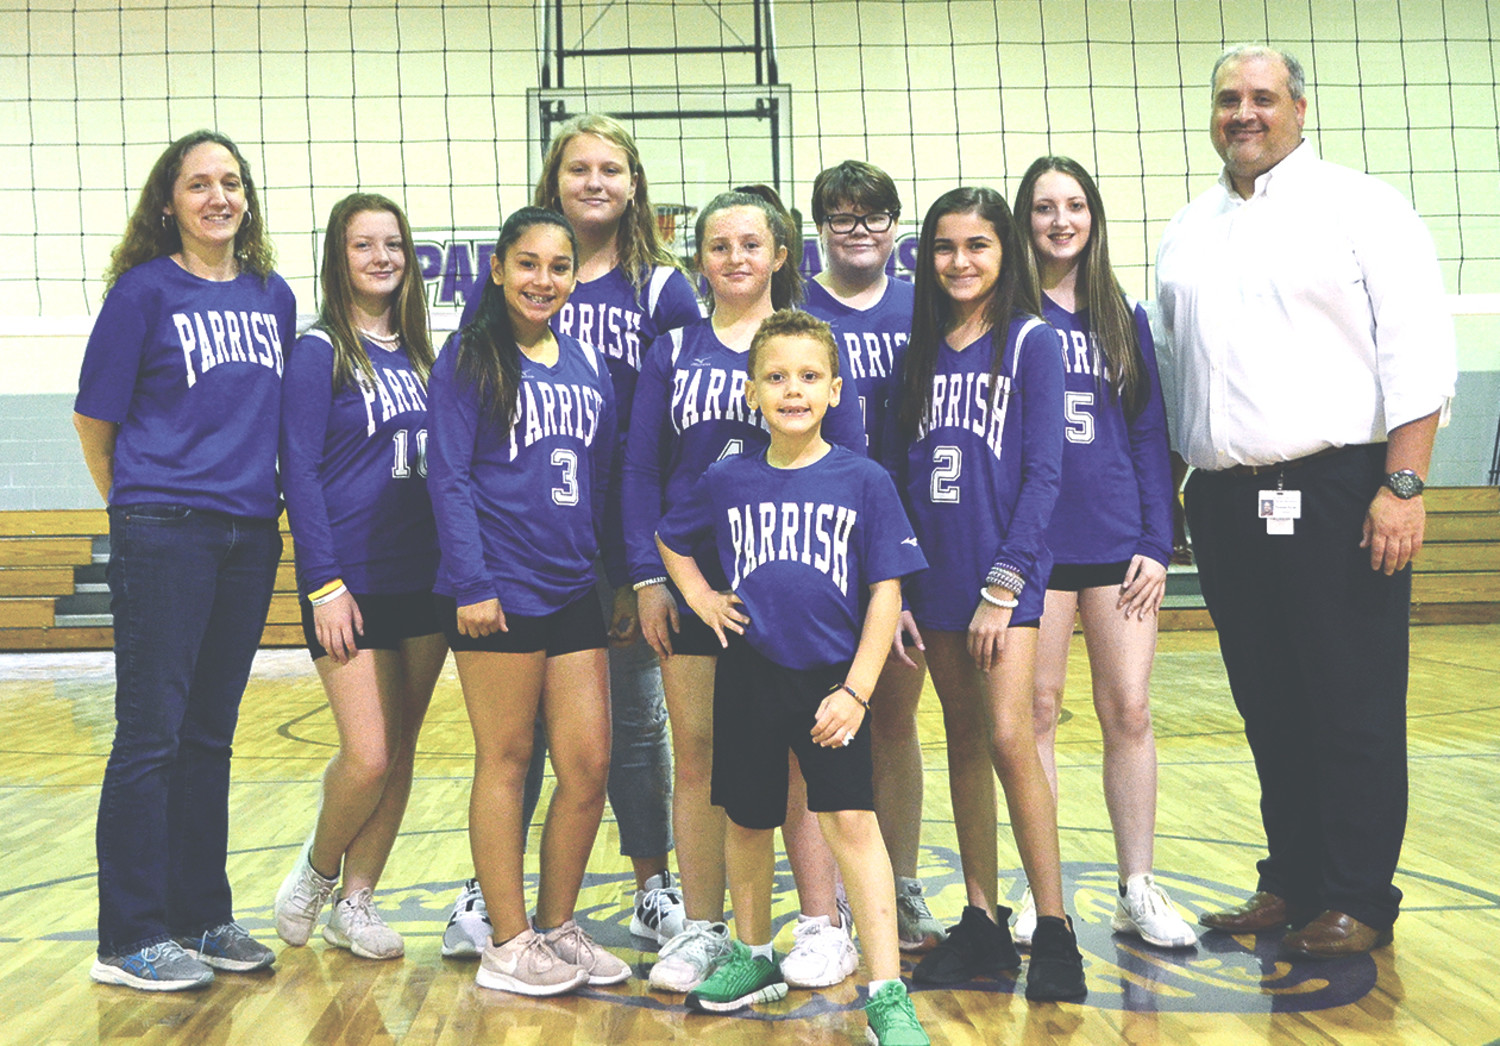 Parrish Elementary School recently completed its first volleyball season. Members of the team are Ciara Stanton, Zowy Poe, Emma Williams, Sarah Pate, Sarah Beth Sanford, Gillian Hare, and Makale Harper. The teams is coached by Krista Woods.  Jonah Woods is the team manager.